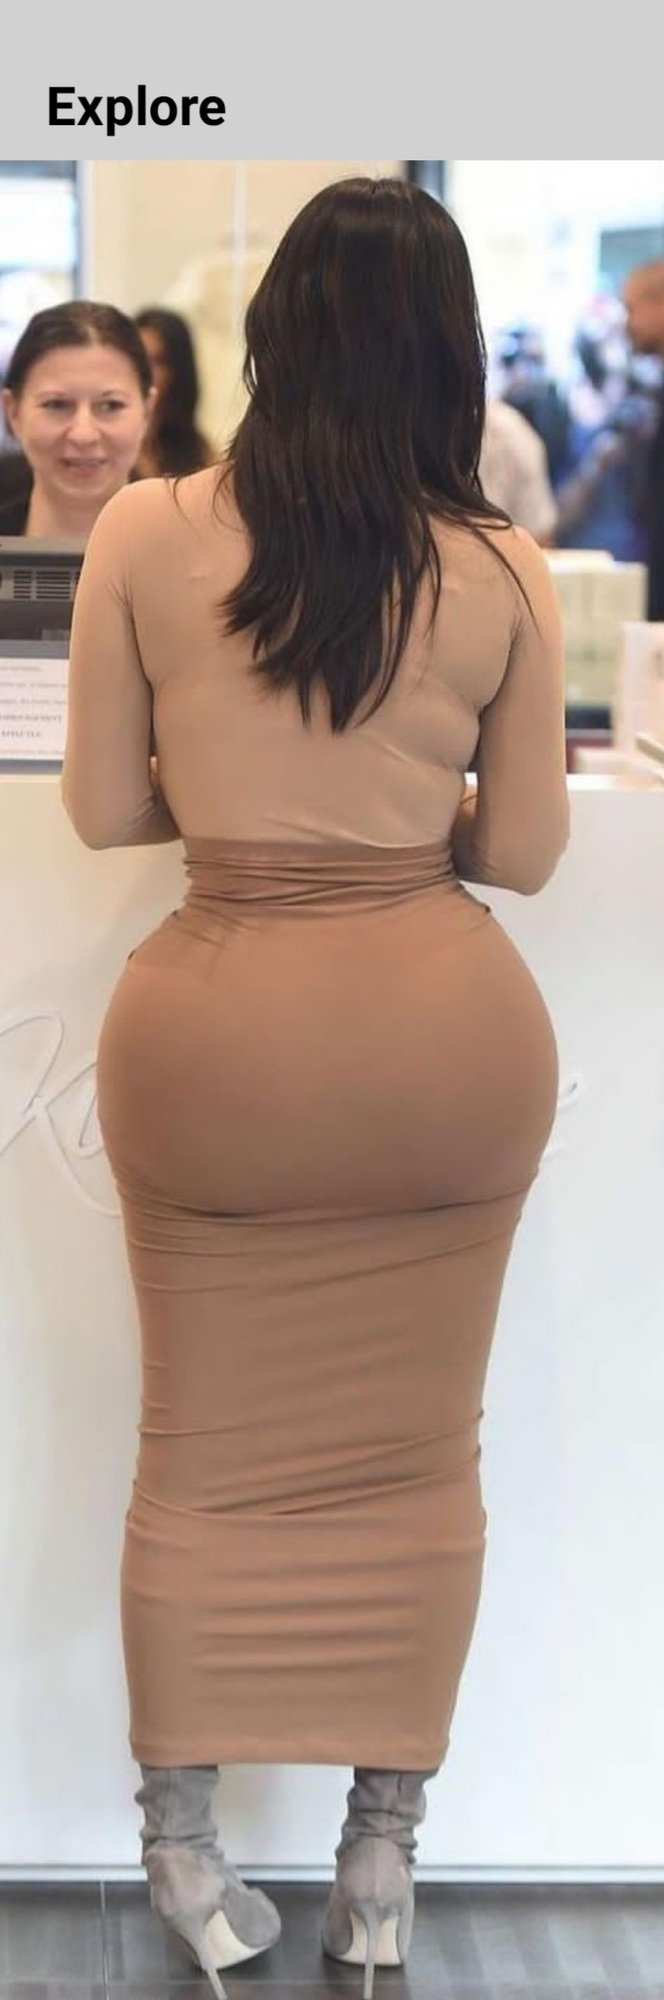 Guys, guess the Booty? Would you love bang it?